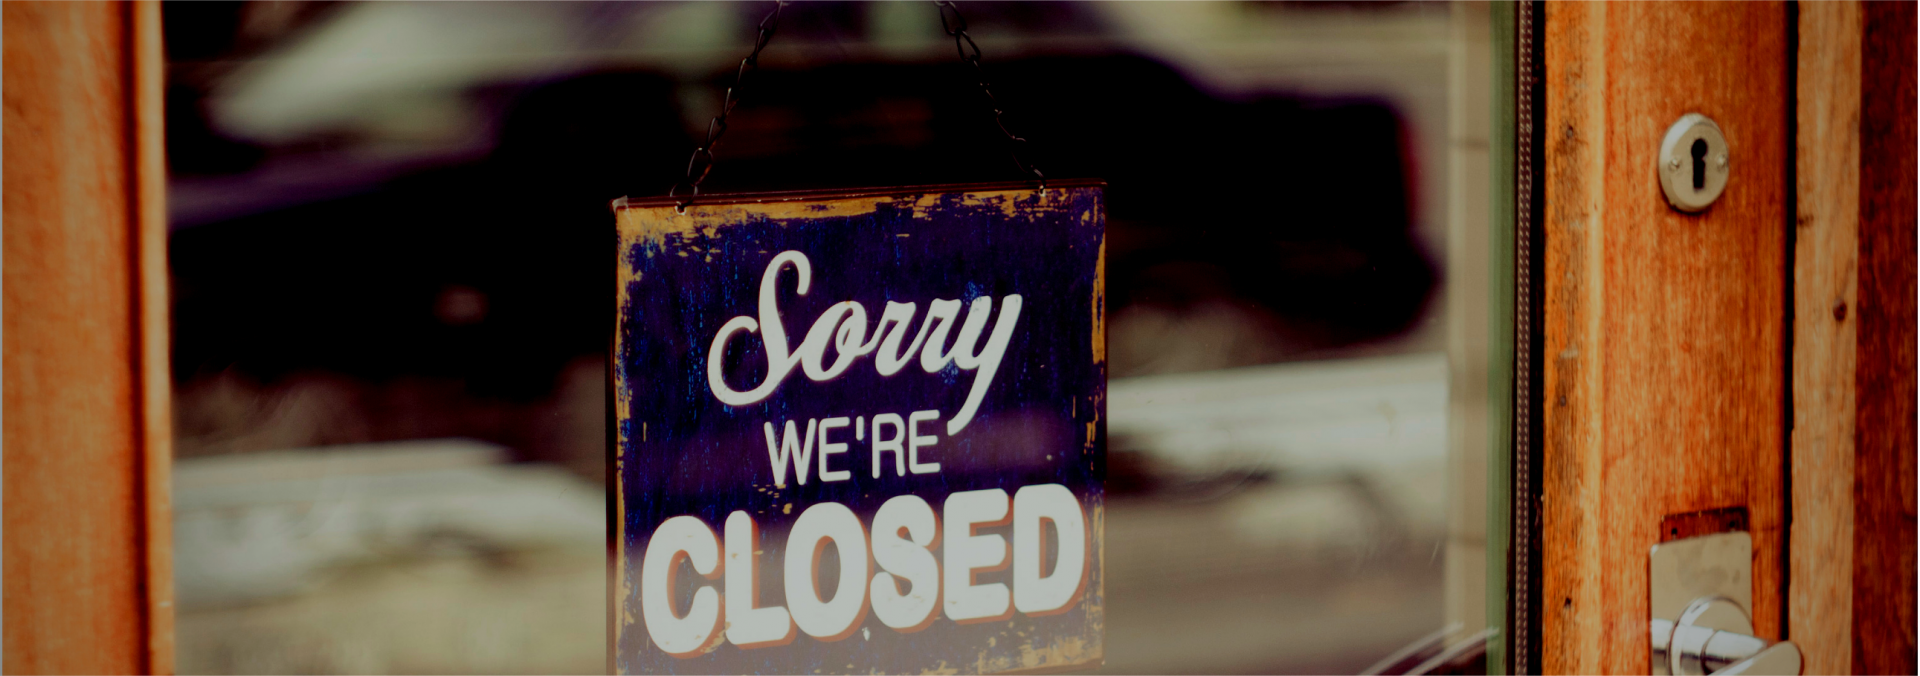 A closed sign hangs in a business window.